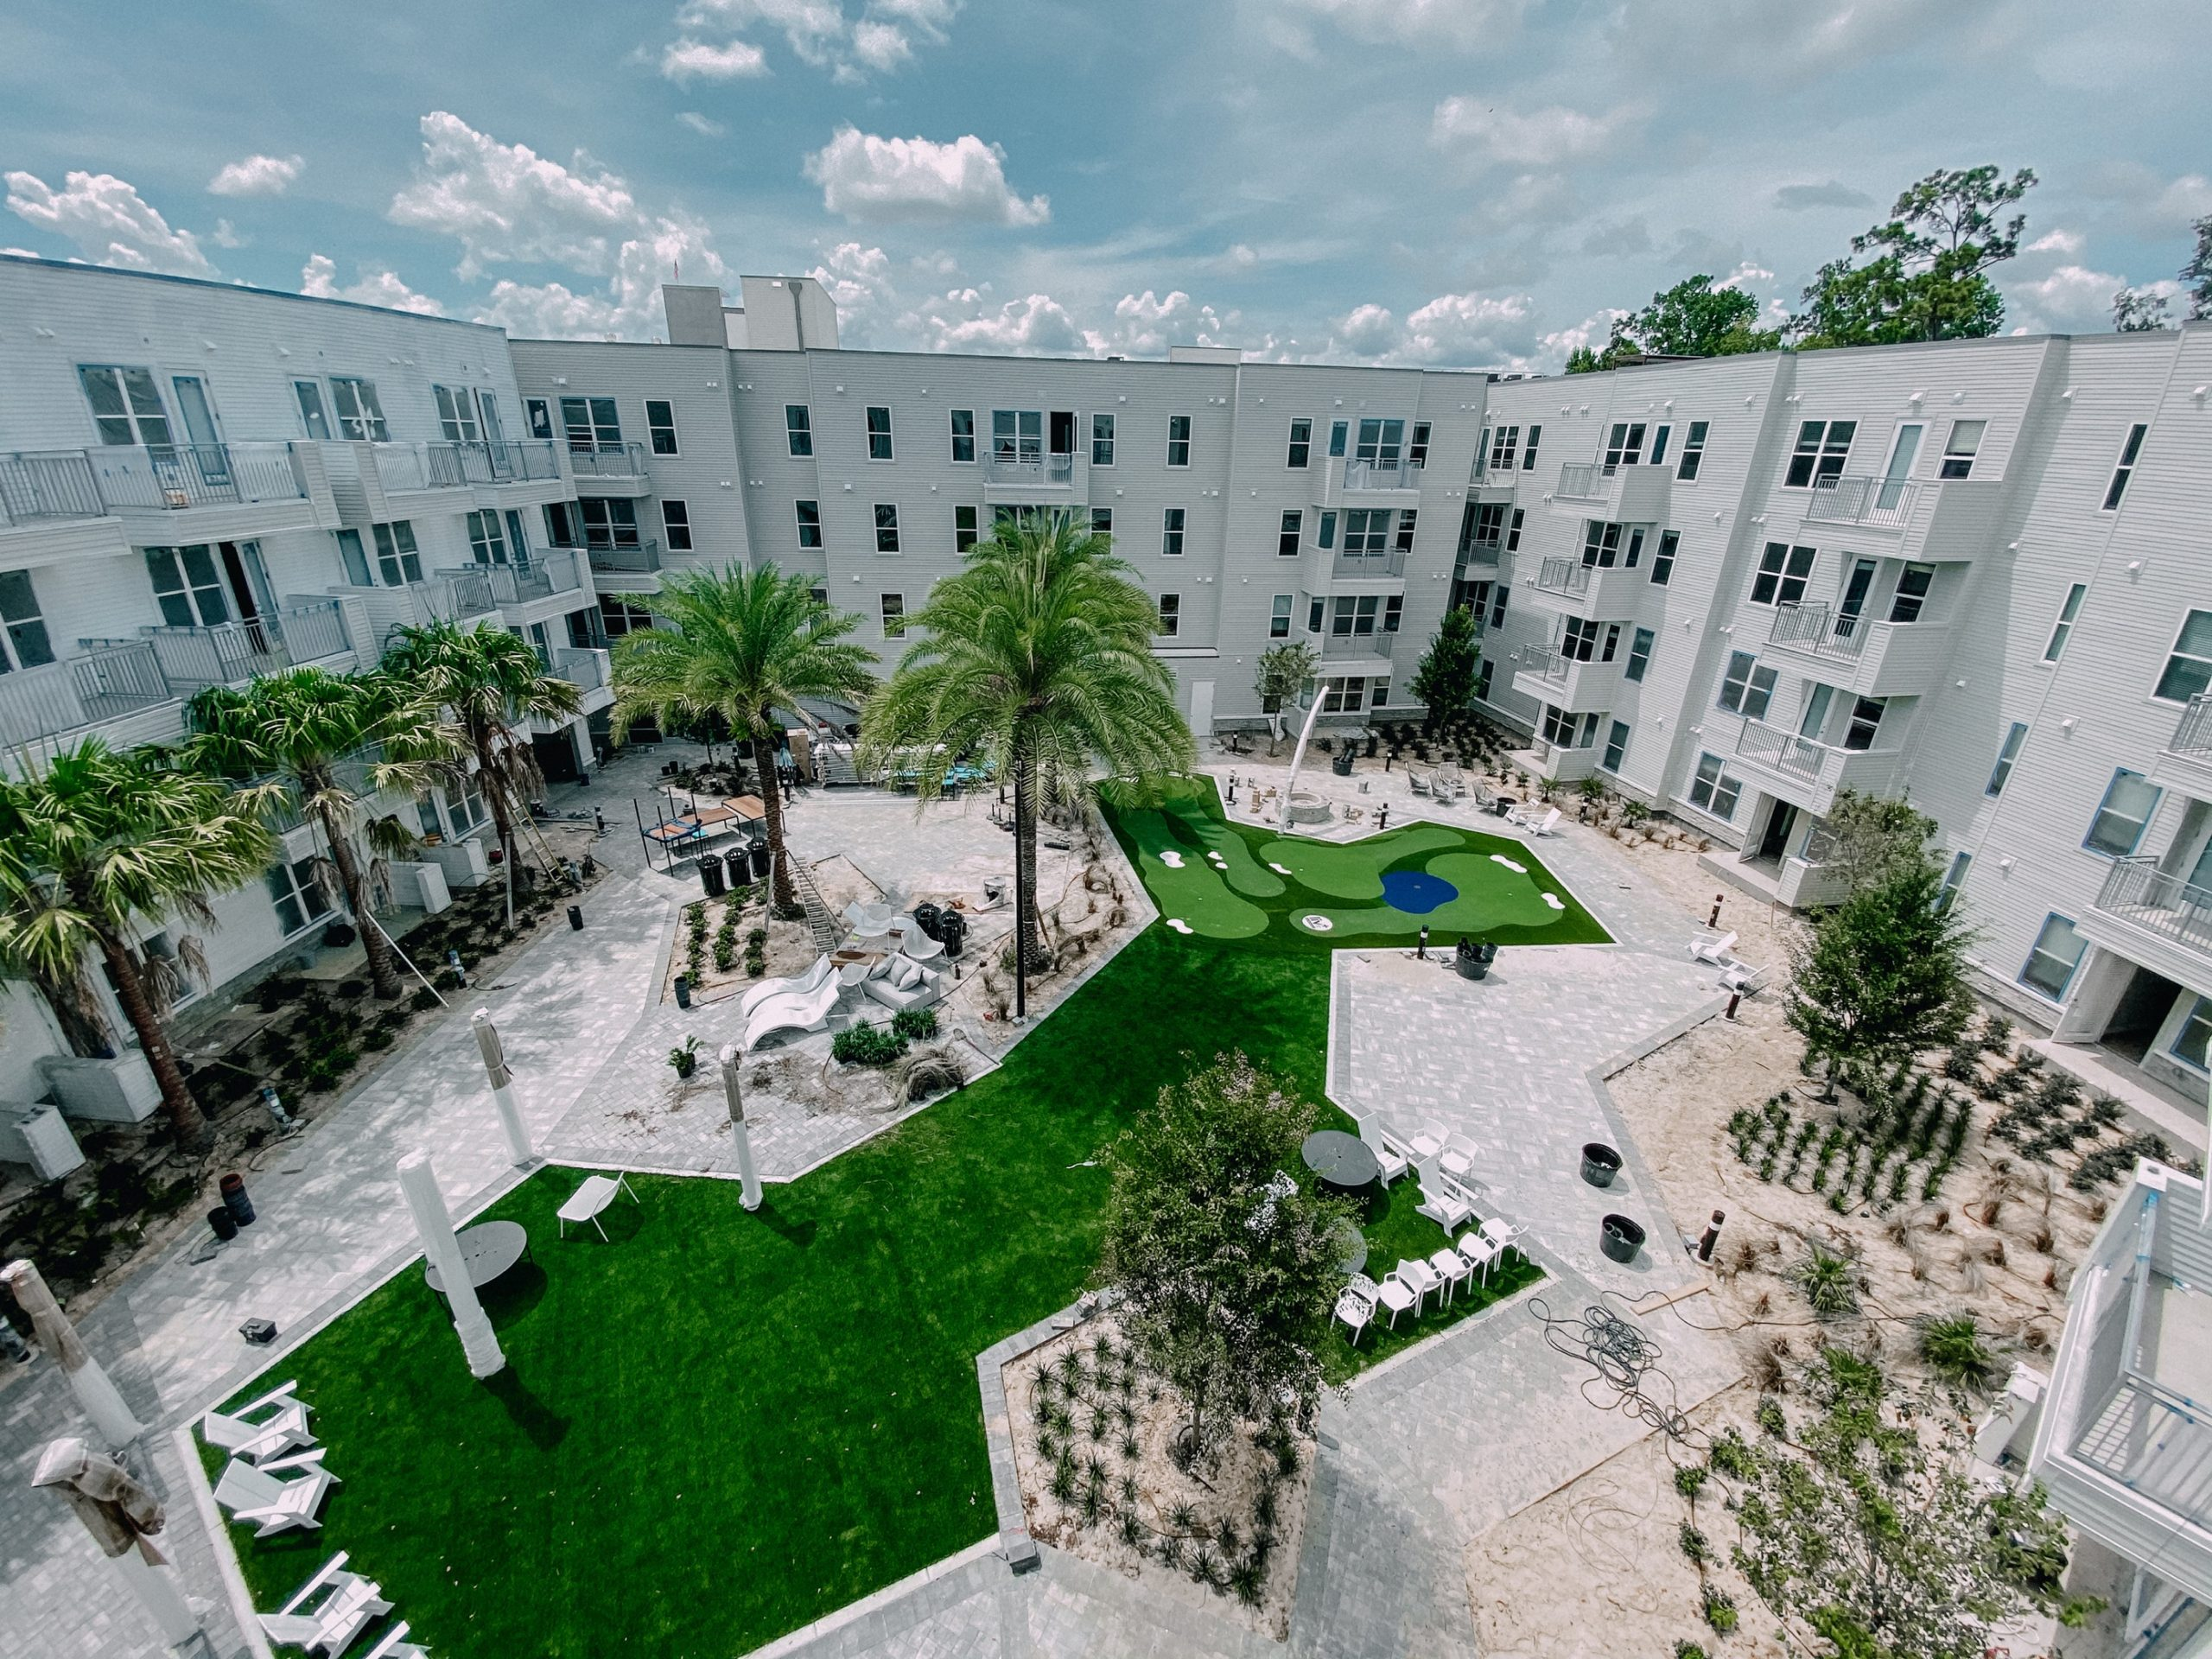 Aerial View of the Courtyard at Liv+ Gainesville Apartments